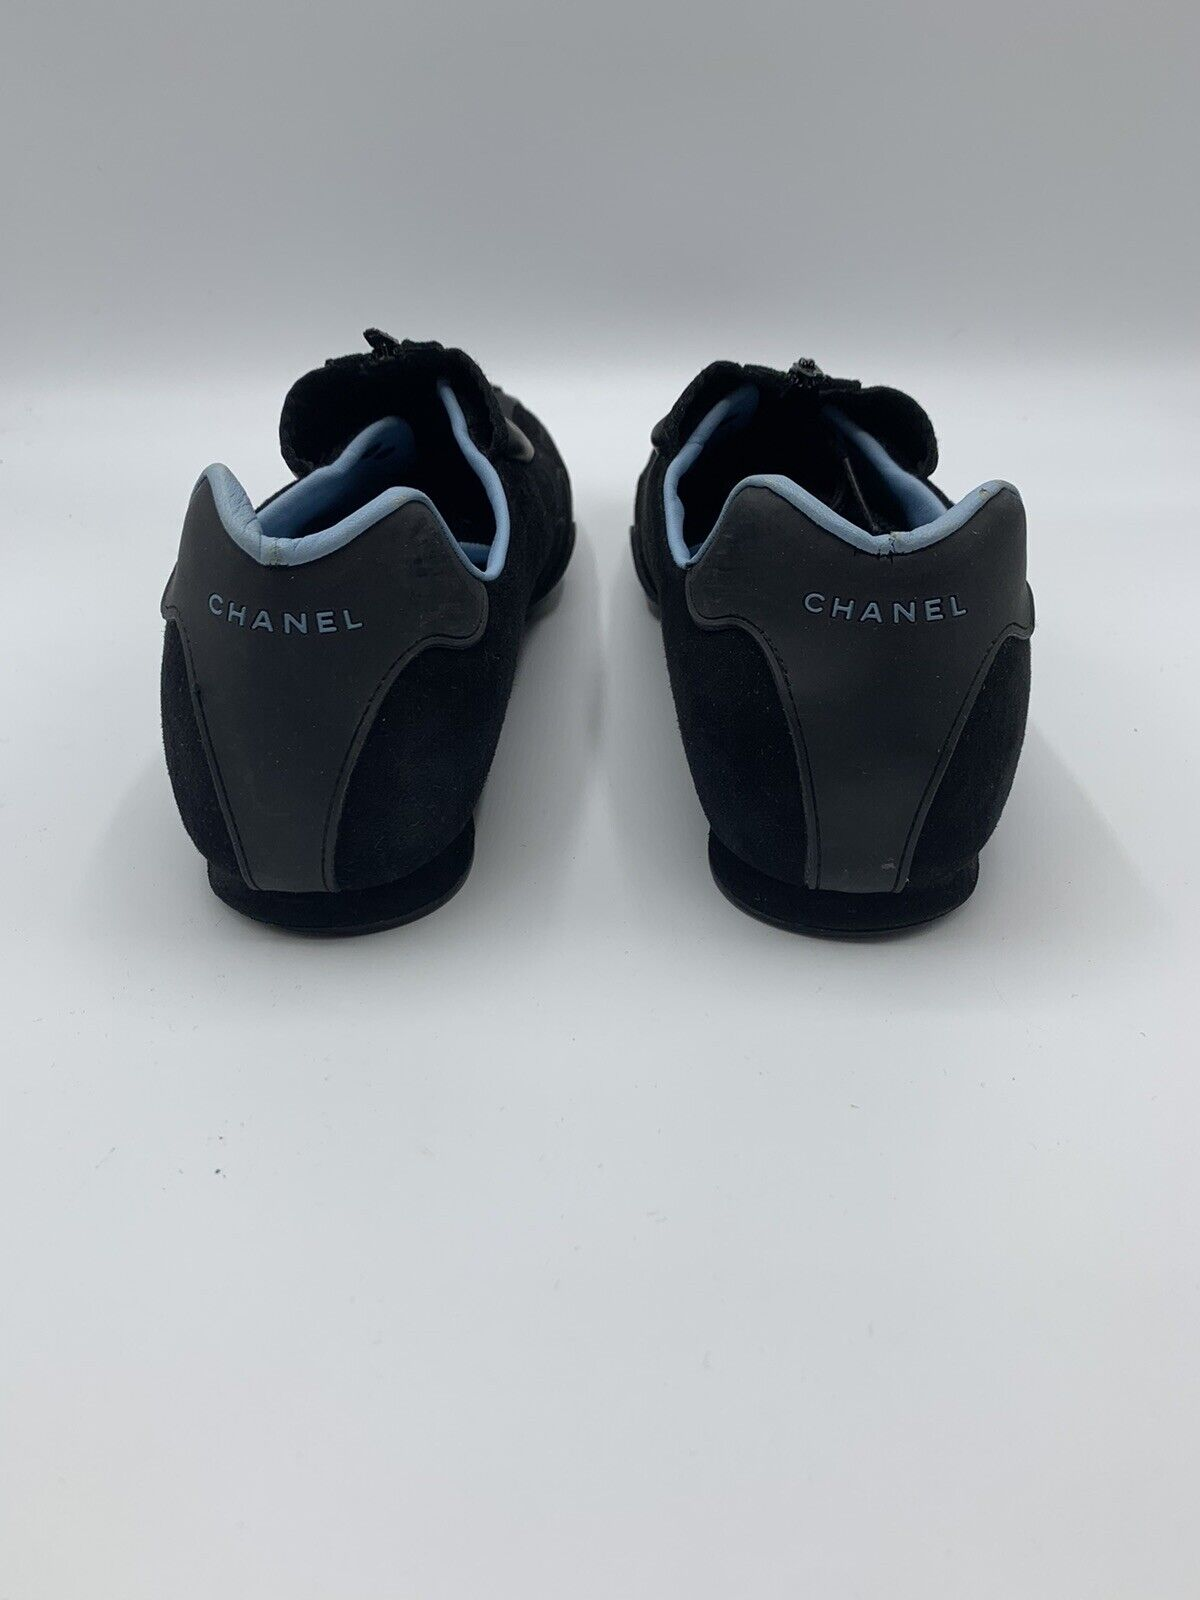 Chanel Sneakers - image 10